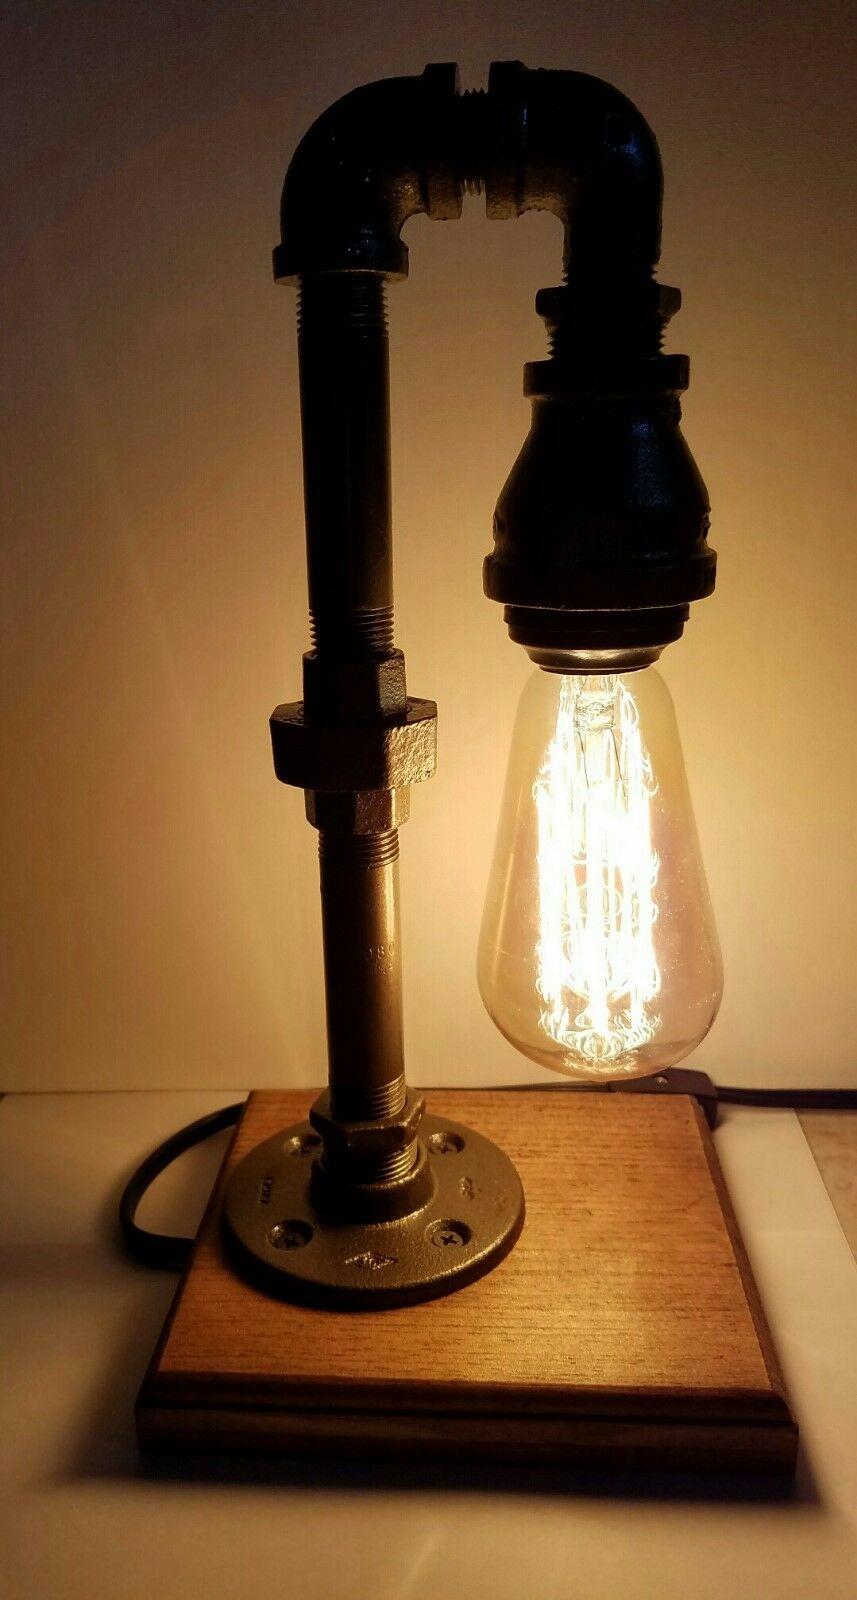 Retro Industrial Pipe Desk Lamp steampunk style with vintage